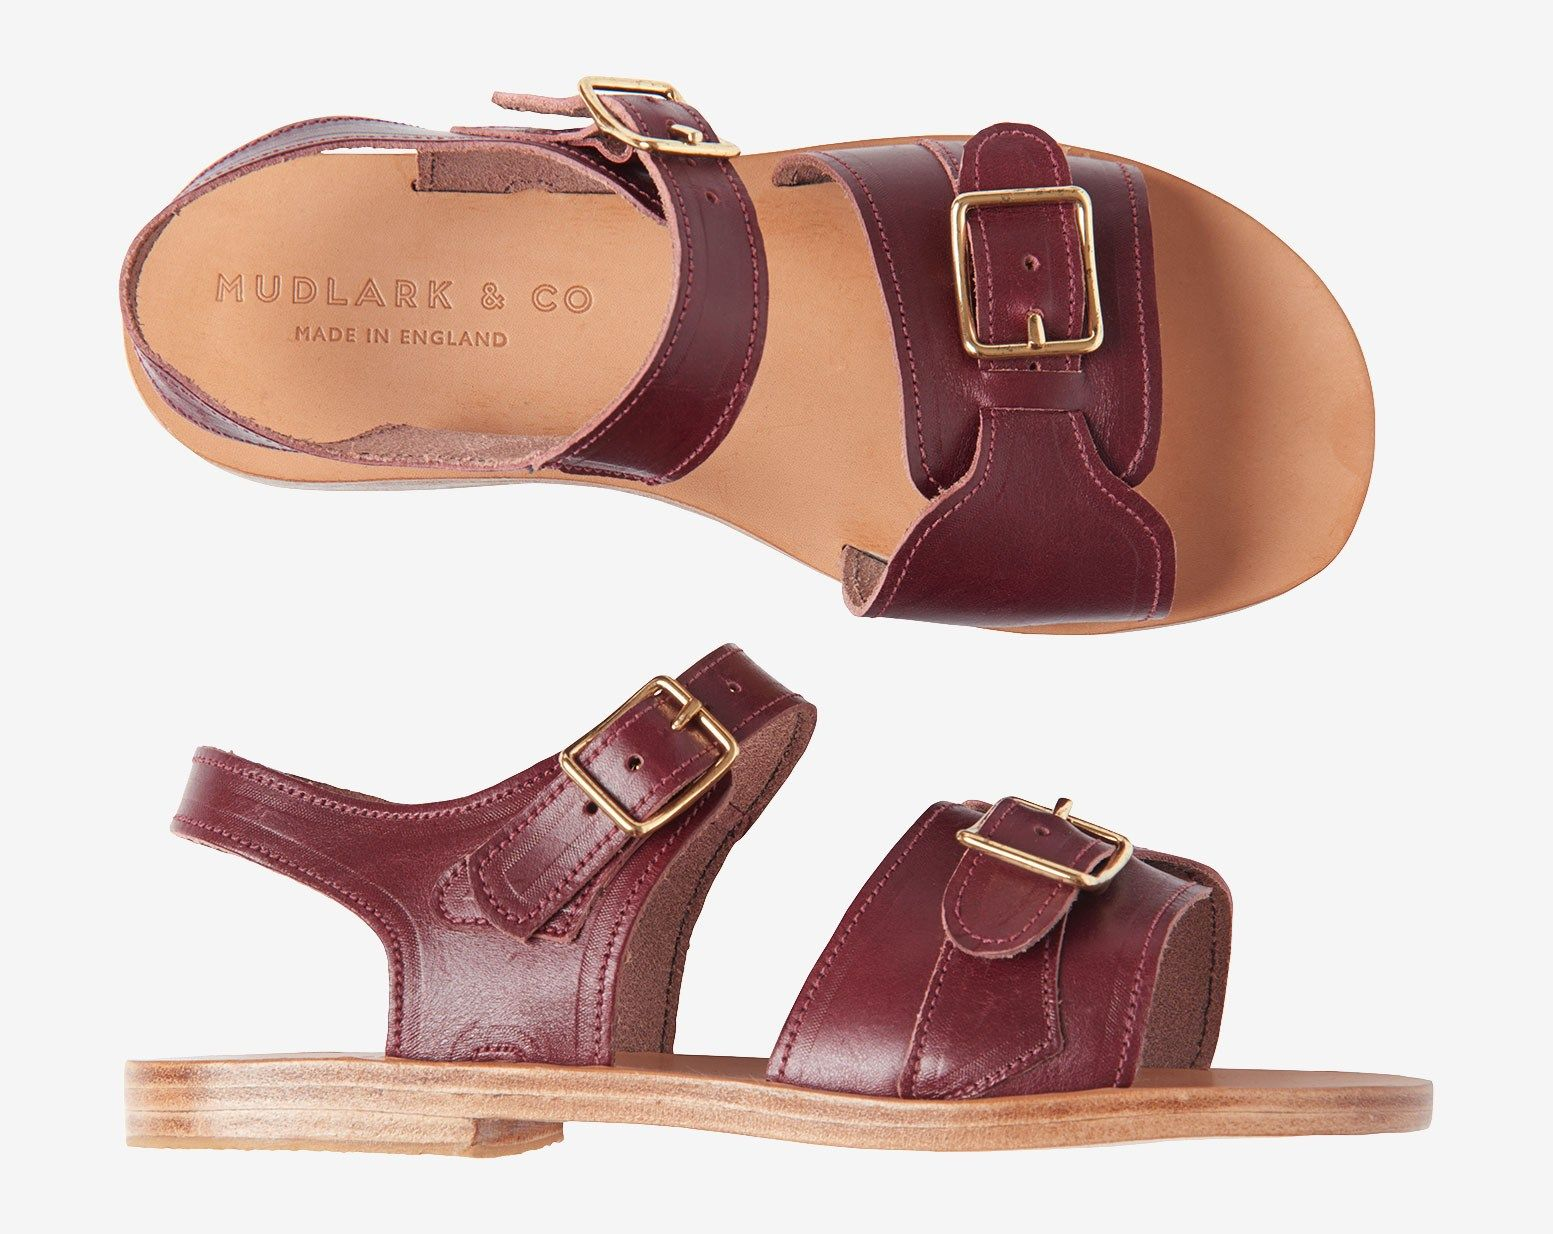 63b93a68c41cc MUDLARK SANDAL | Vegetable tanned leather upper with natural nappa ...